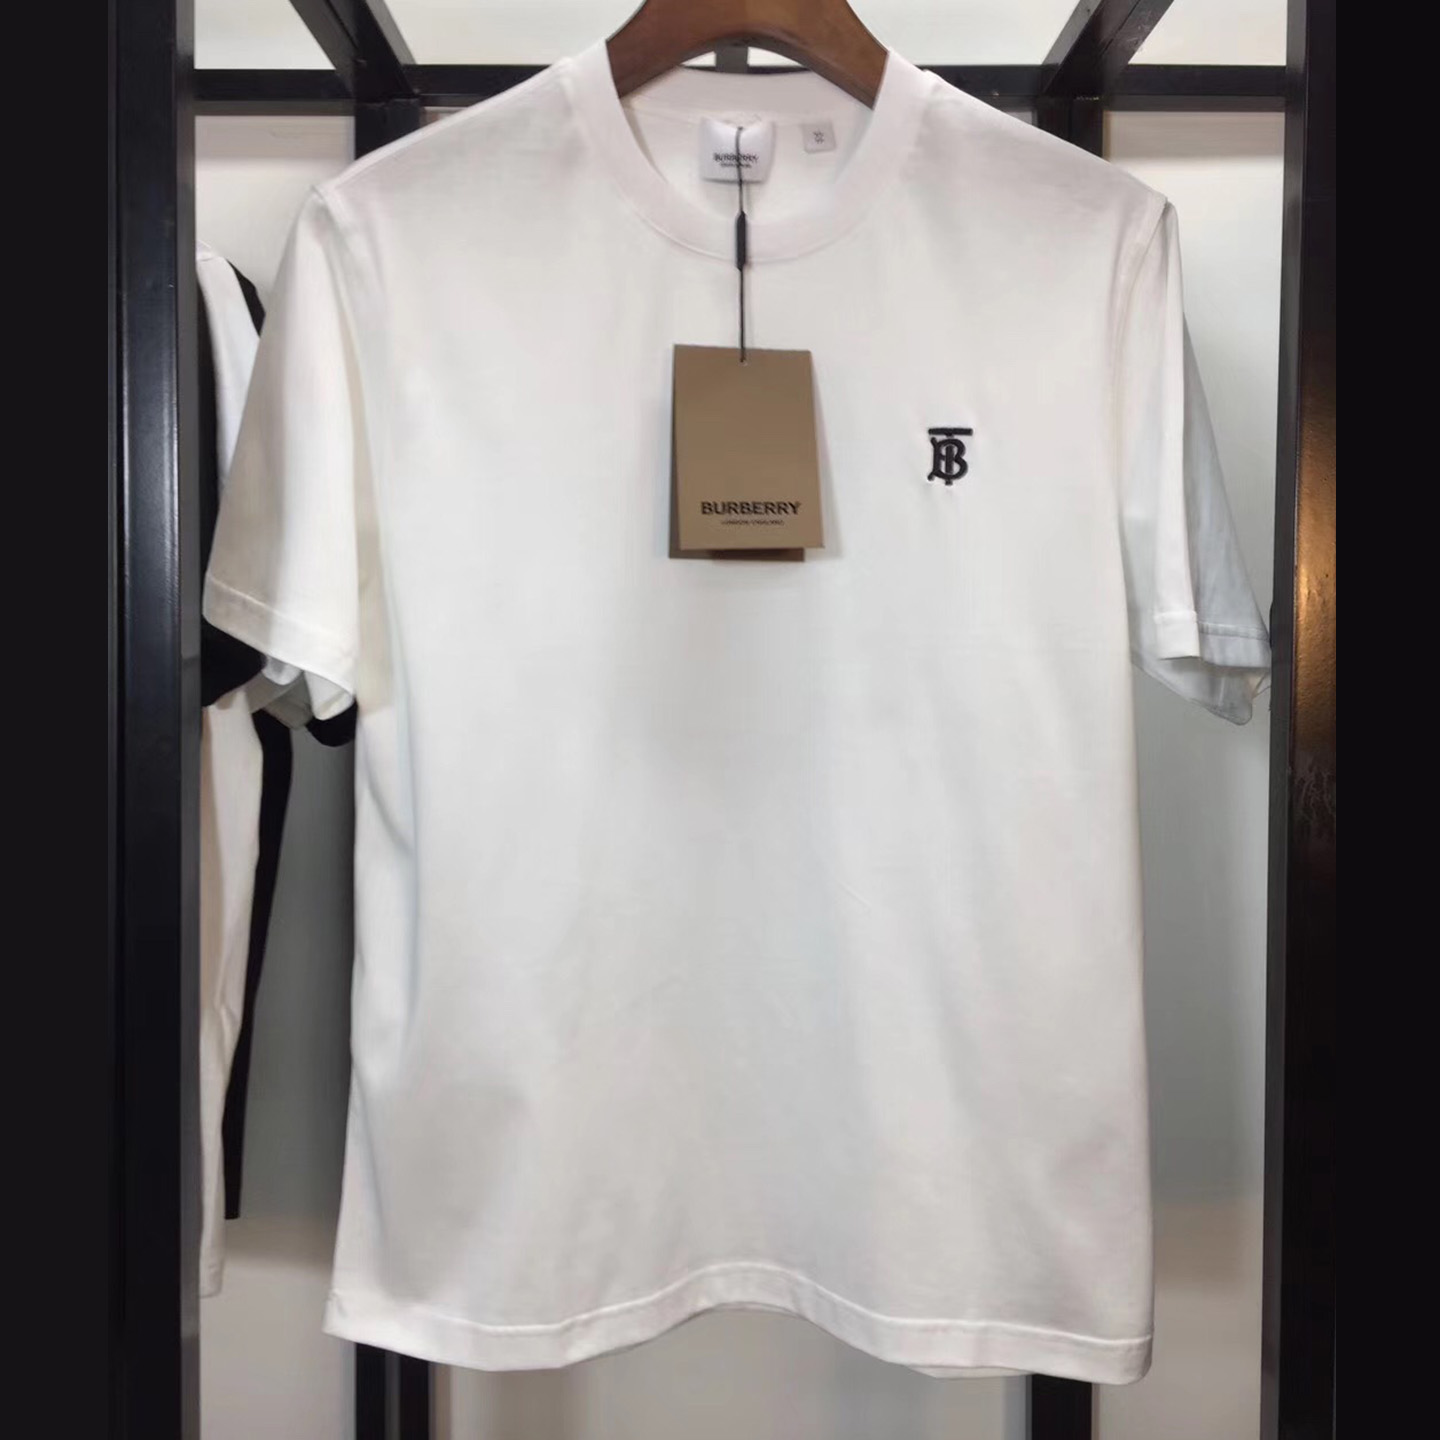 Burberry Monogram Motif Cotton T-shirt White - FashionBeast